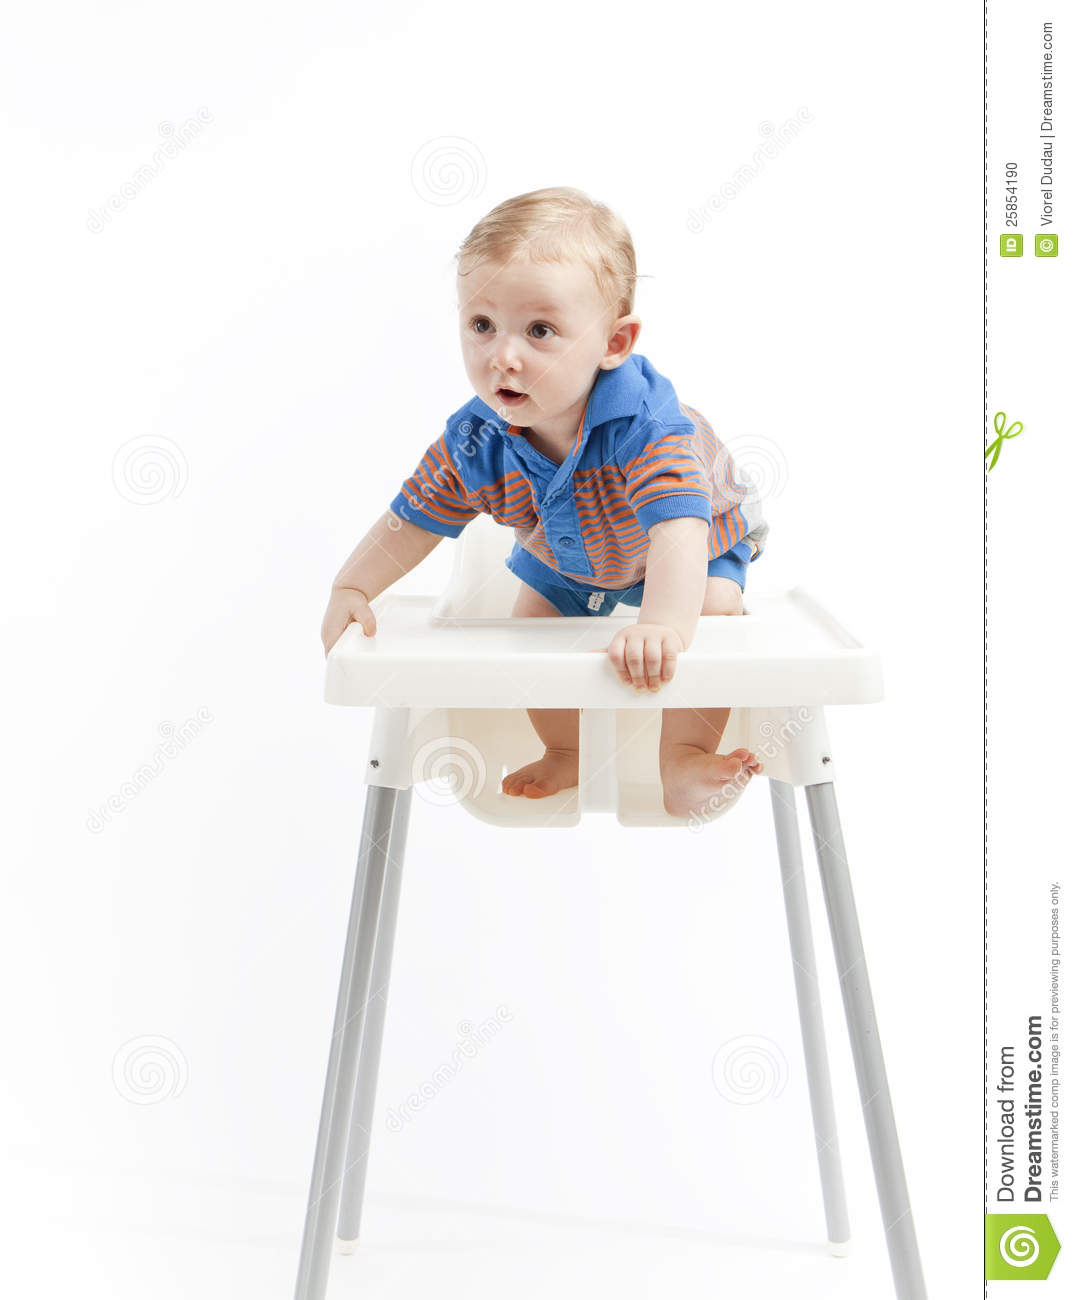 Toddler Boy Chair Baby Boy In High Chair Stock Photo Image Of Standing